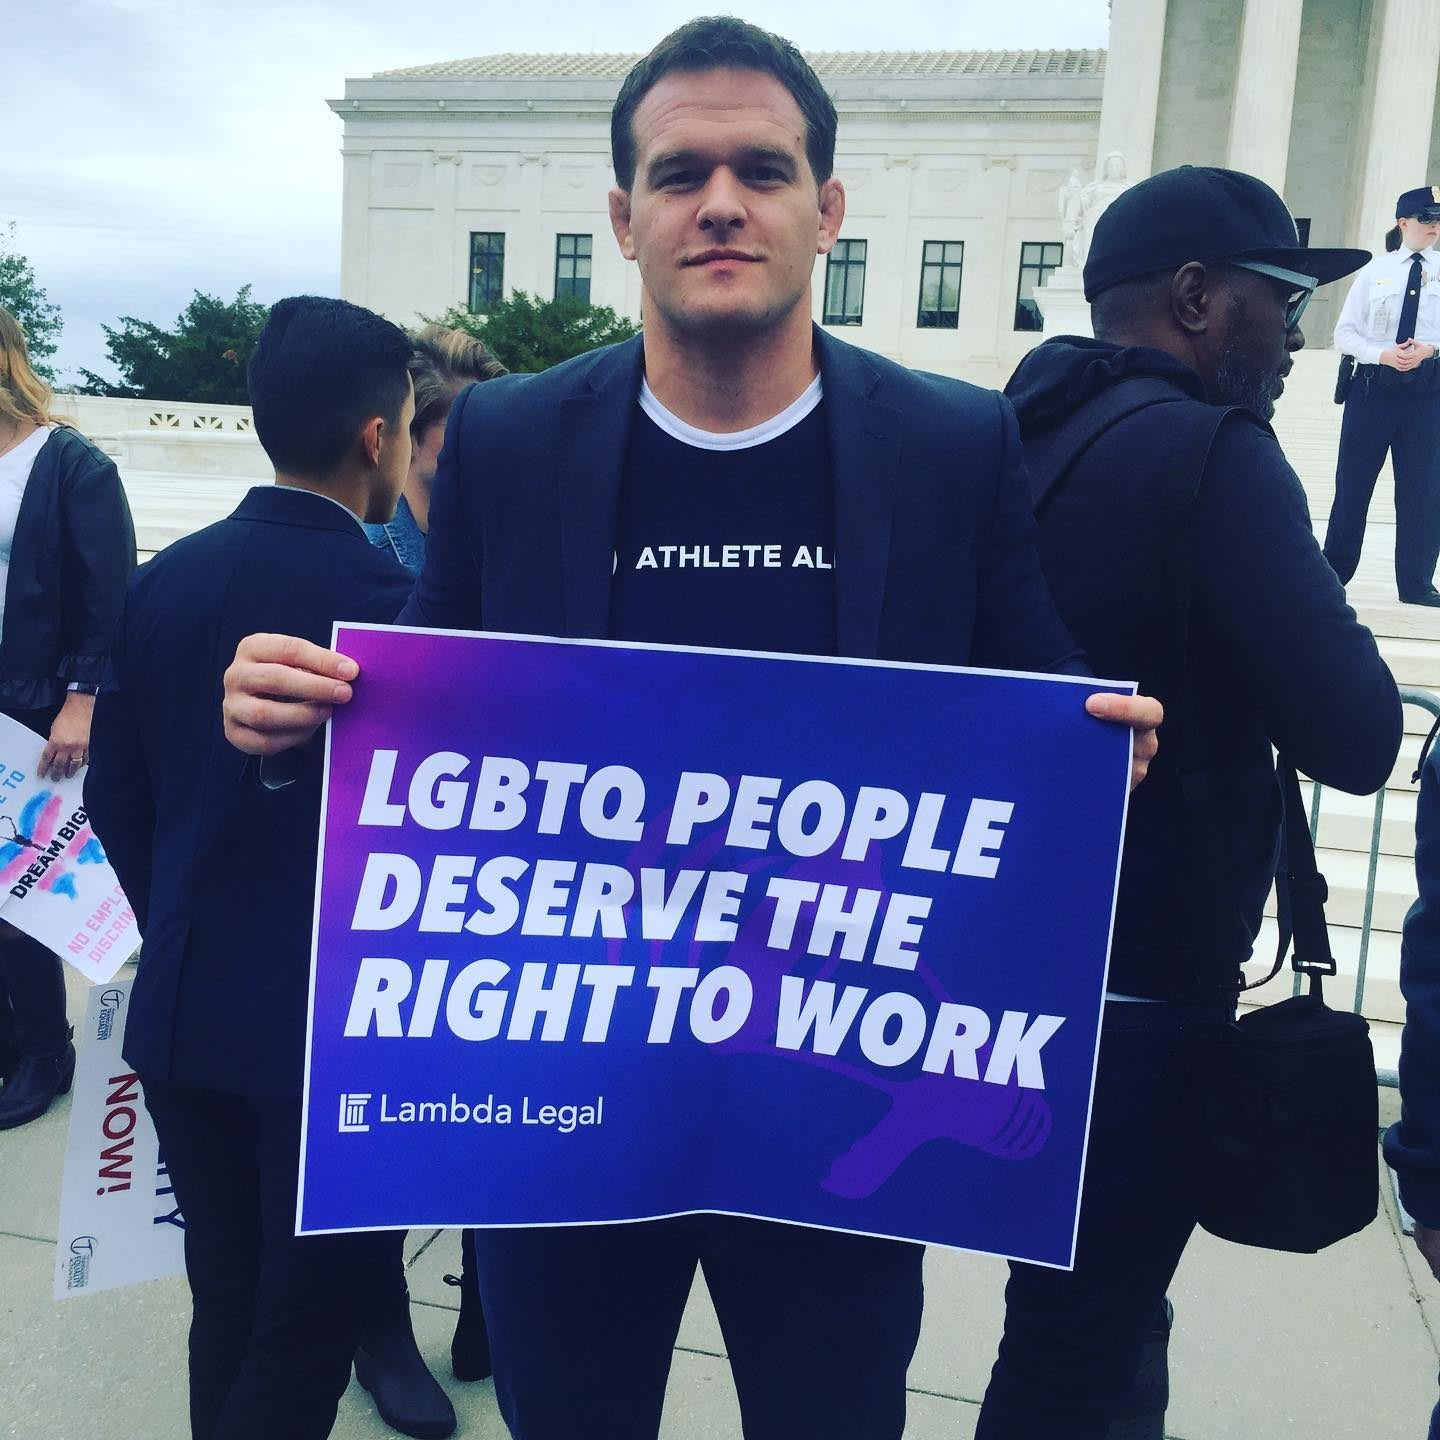 Man wearing dark suit holding up sign in support of LGBTQ people, Hudson Taylor, founder, Athlete Ally, LGBTQ, inclusion, diversity, protest